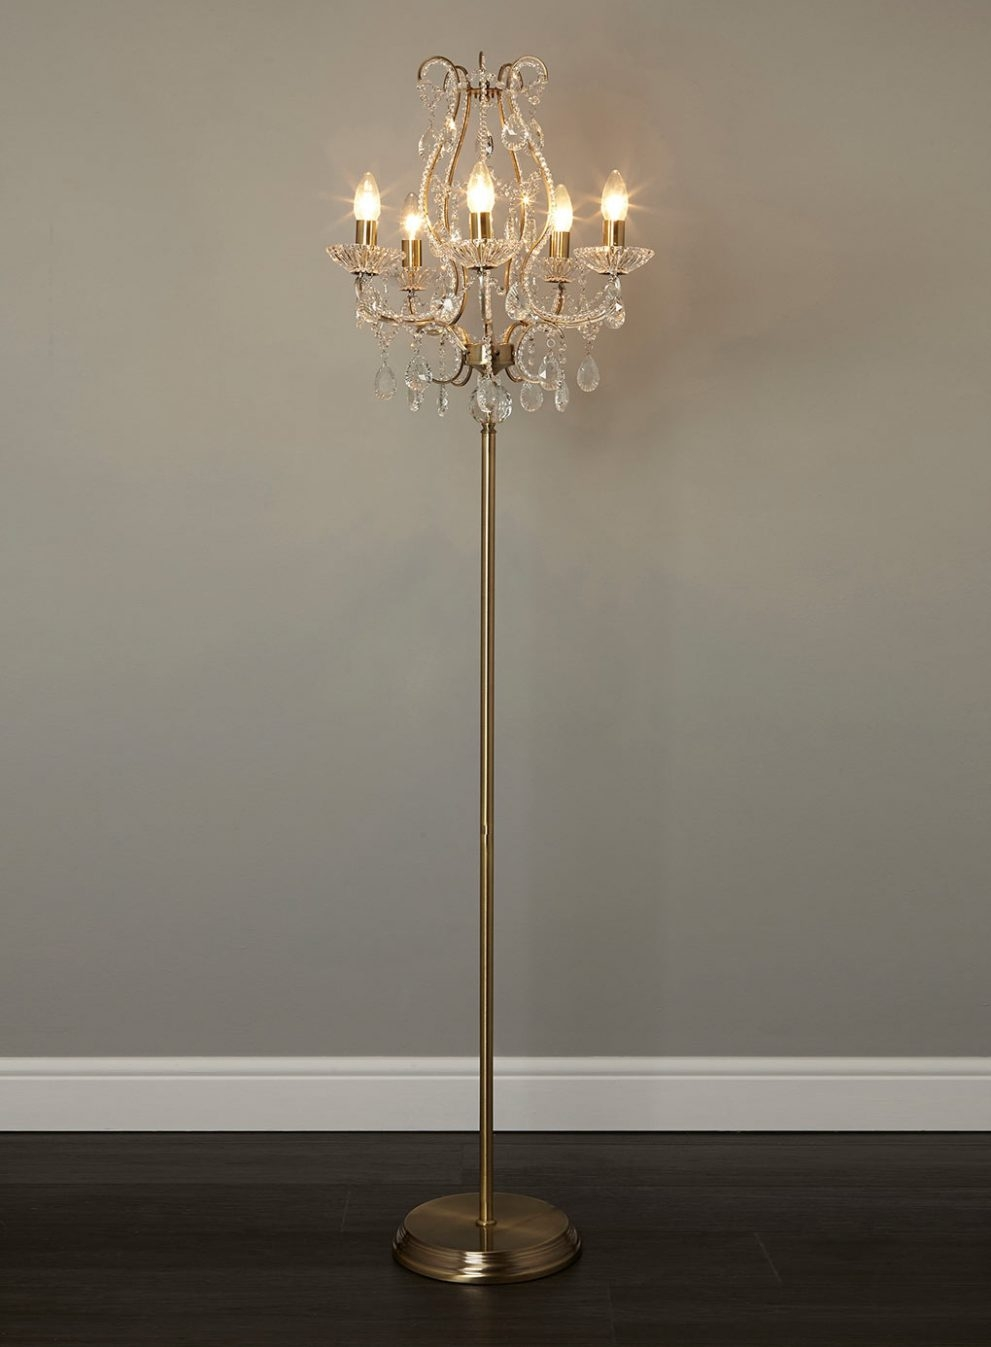 Trendy Small Crystal Chandelier Table Lamp 141 Small Crystal Intended For Small Crystal Chandelier Table Lamps (Image 23 of 25)